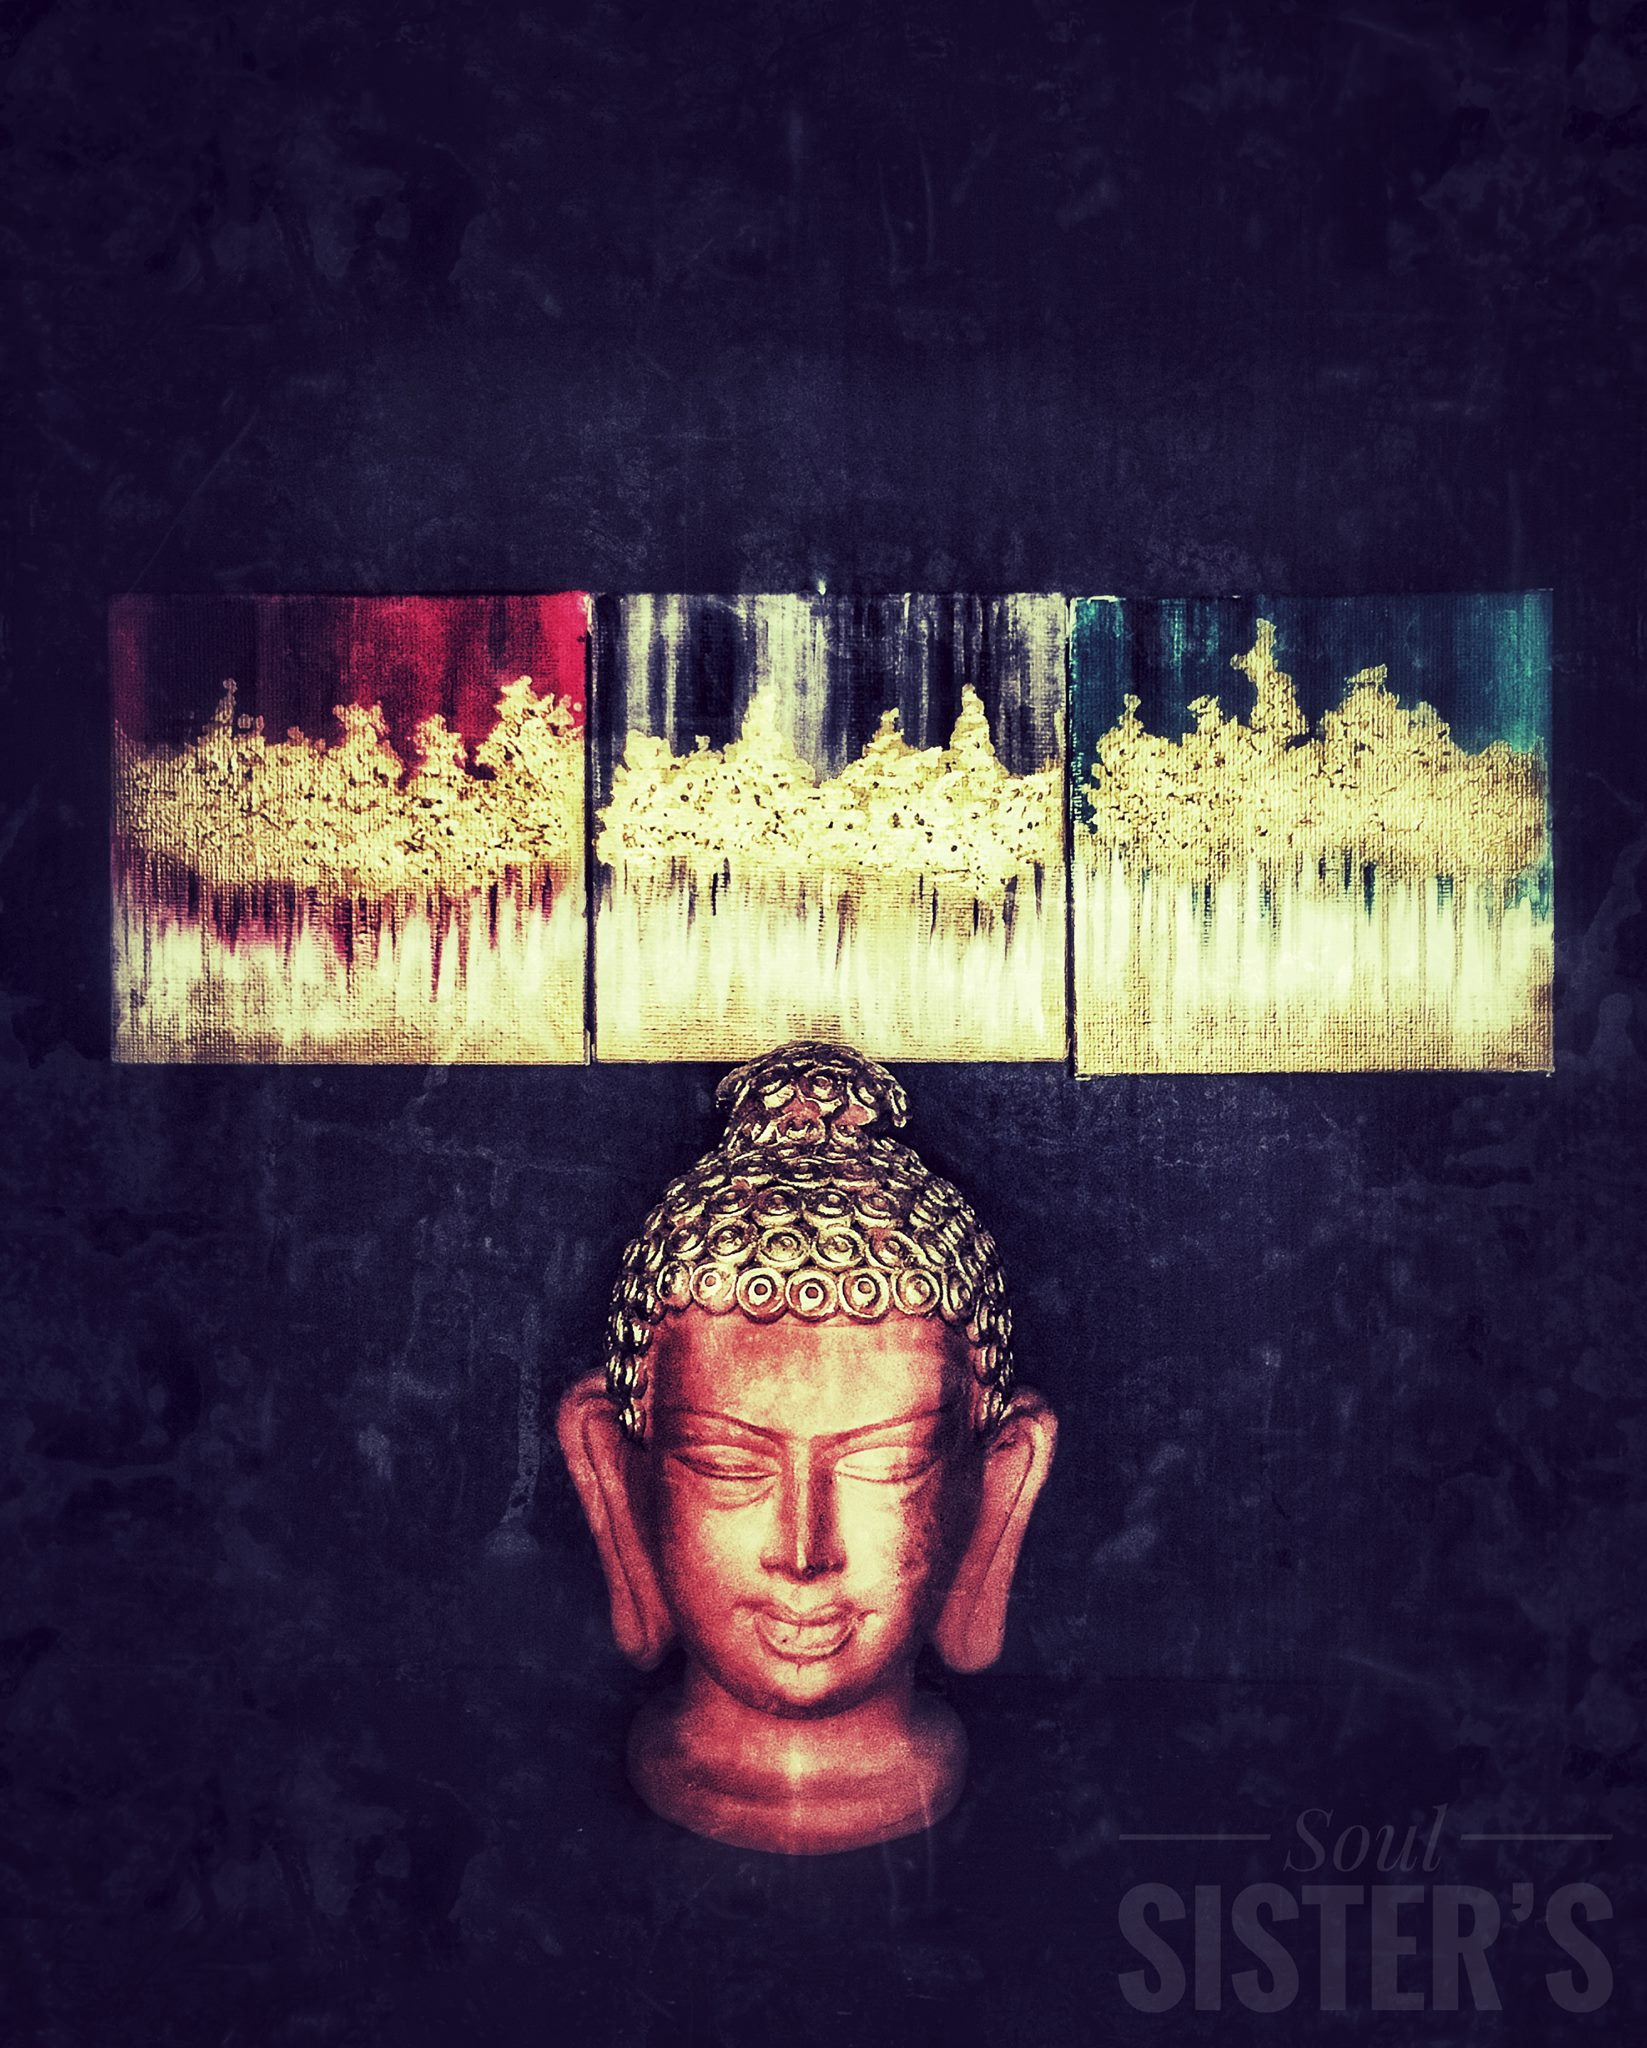 miniature gold foil painting we created up as a back drop for the BUDDHA !!